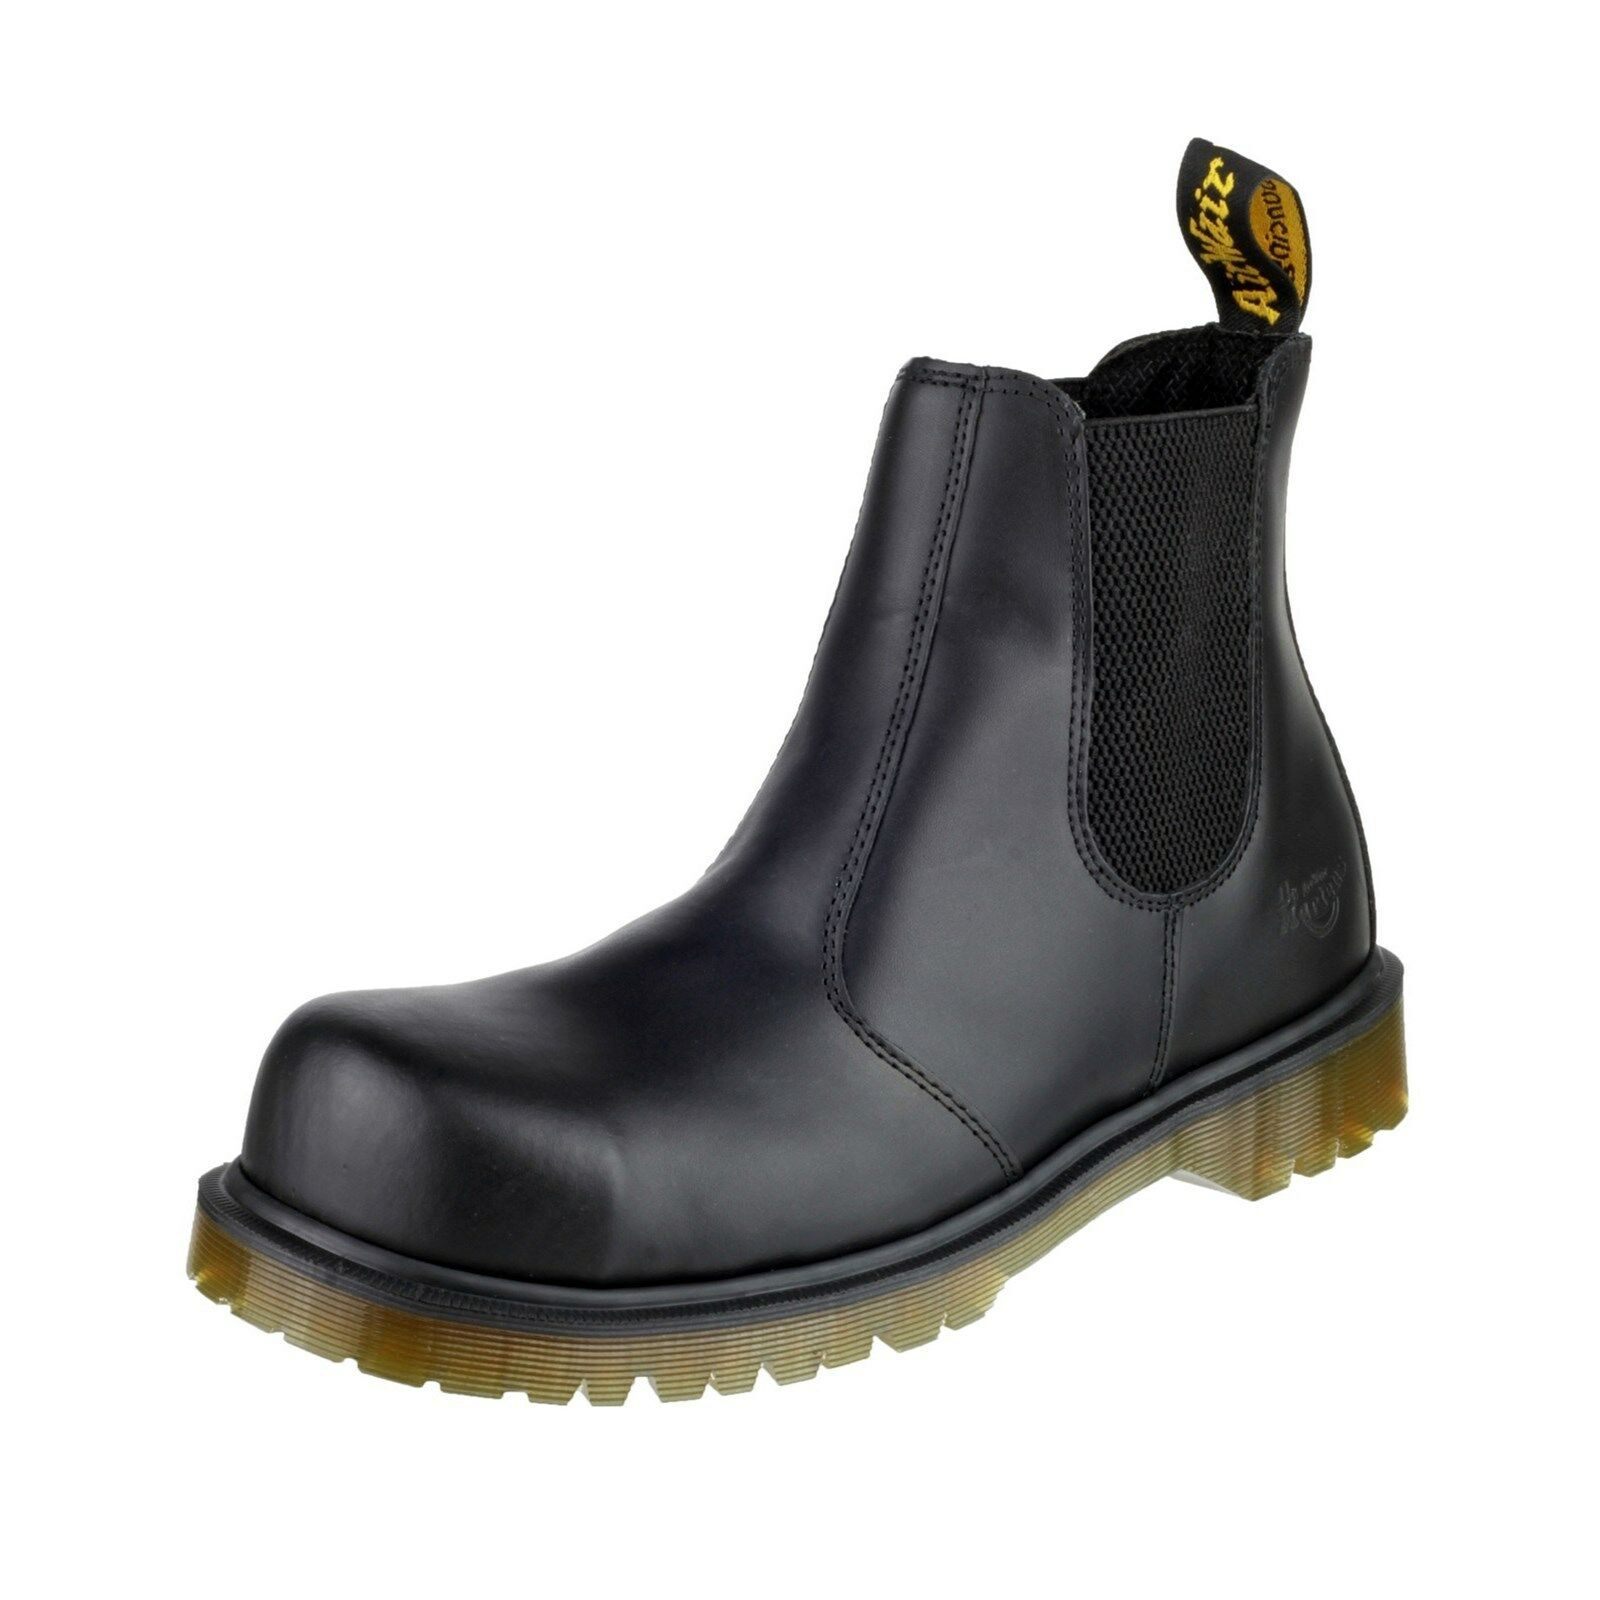 Dr Martens FS27 Mens Safety Stiefel Industrial Chelsea Dealer Leather Work schuhe